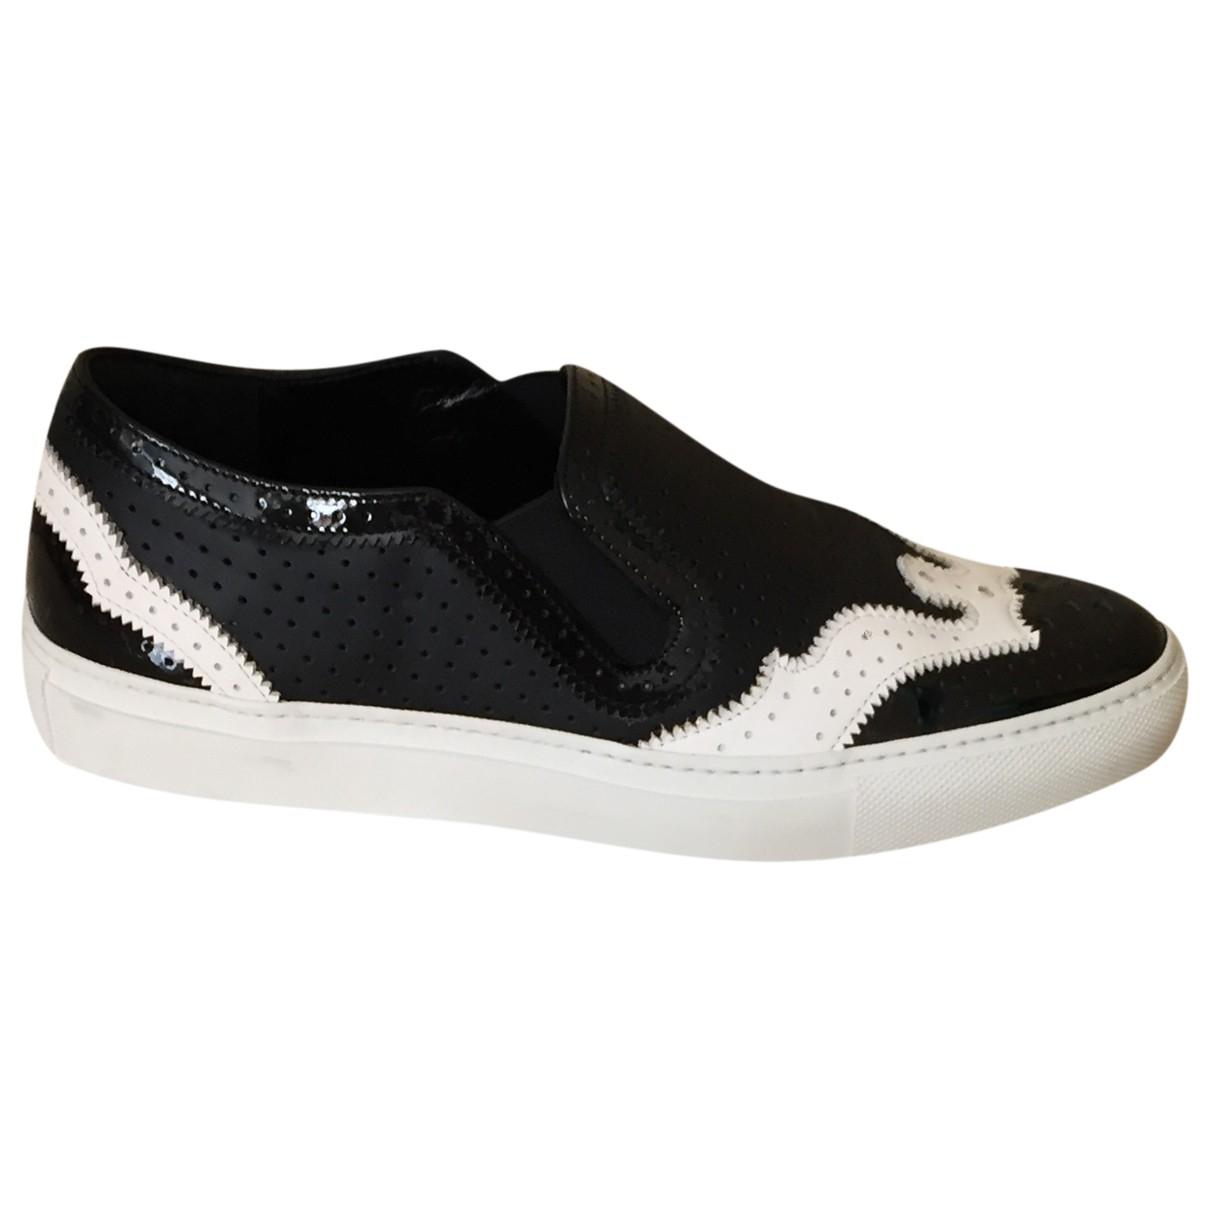 Givenchy \N Black Leather Trainers for Women 37 IT